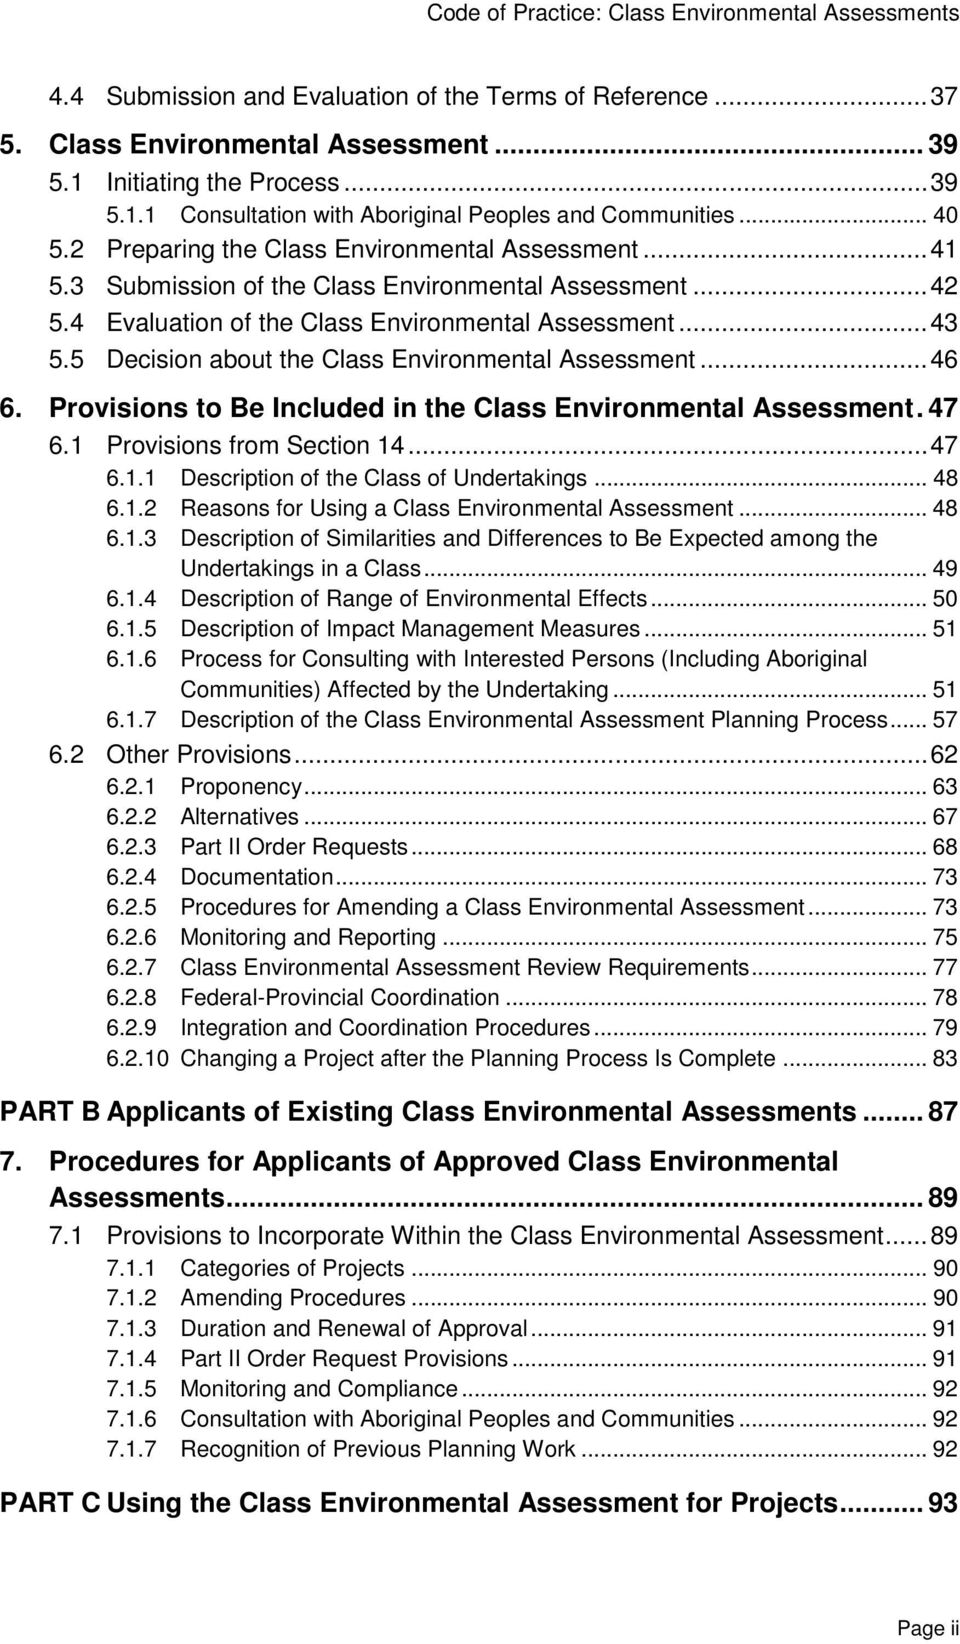 5 Decision about the Class Environmental Assessment... 46 6. Provisions to Be Included in the Class Environmental Assessment. 47 6.1 Provisions from Section 14... 47 6.1.1 Description of the Class of Undertakings.